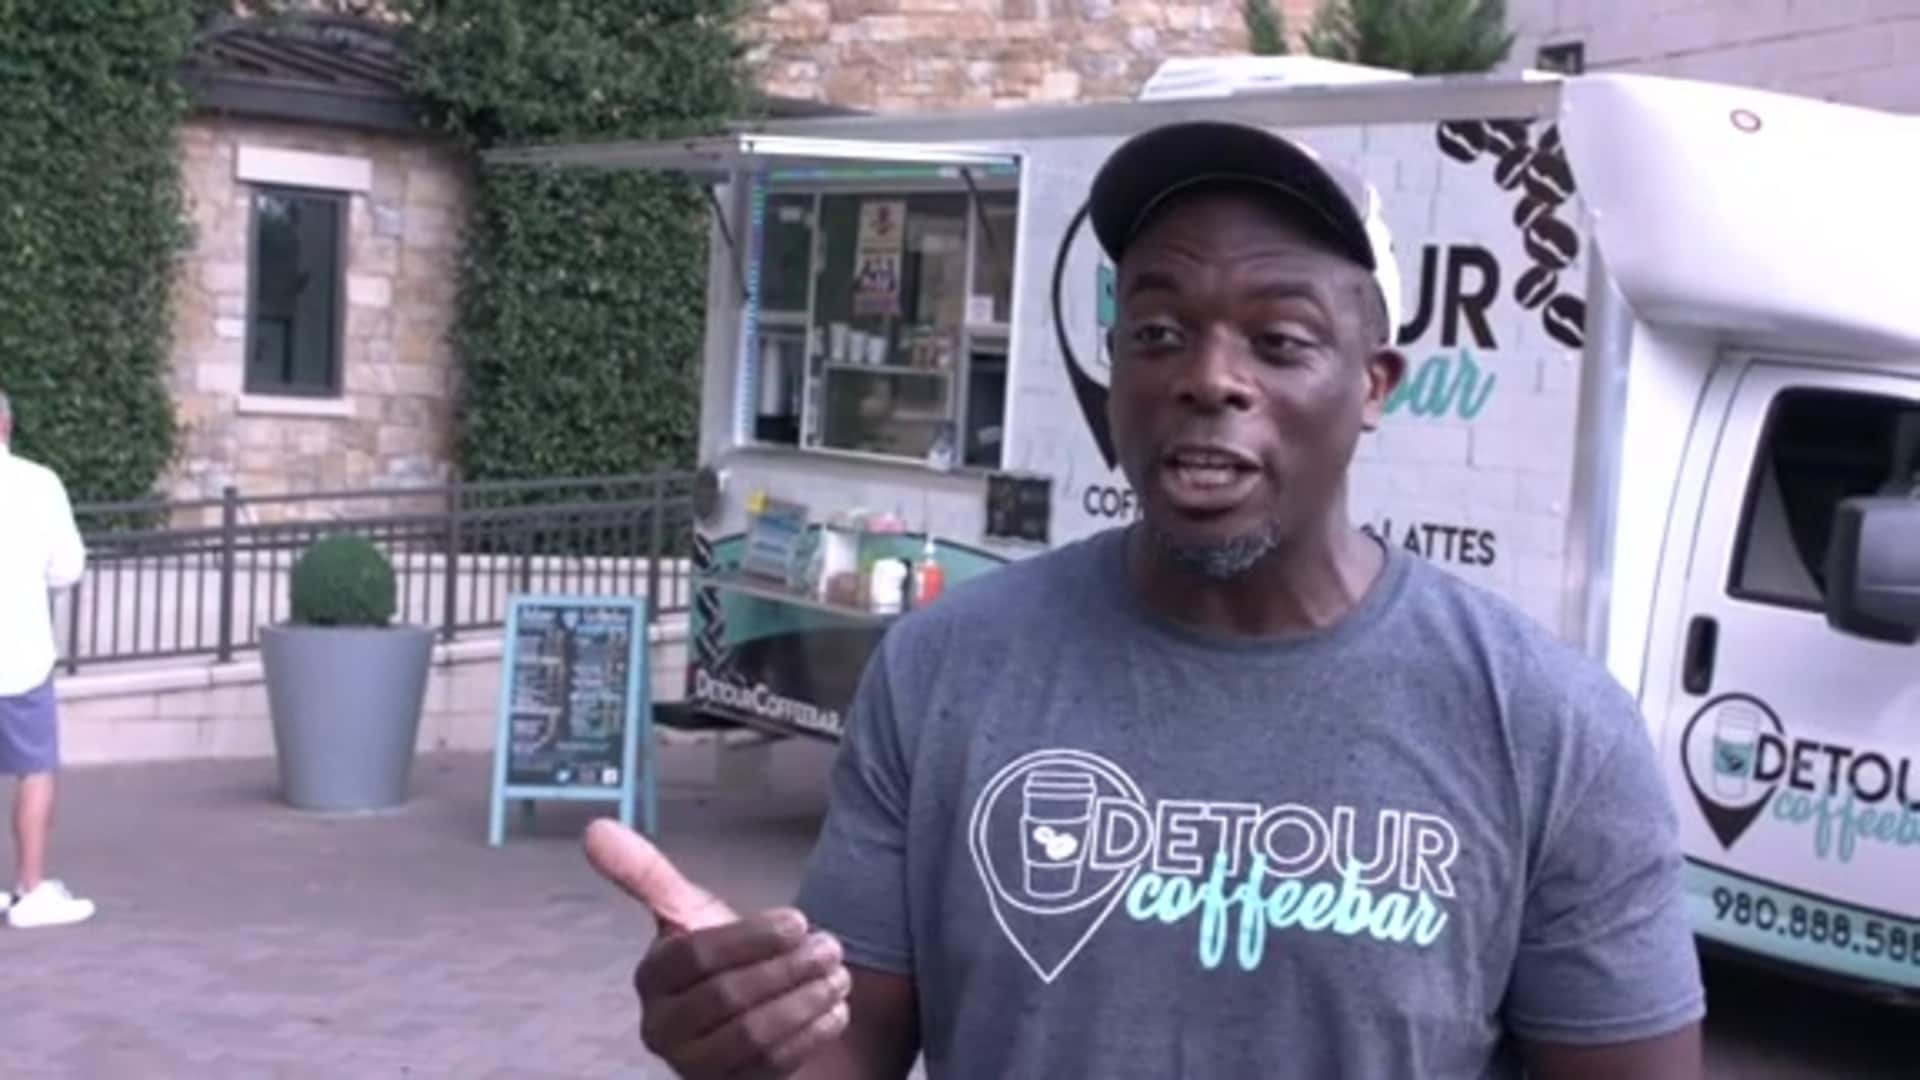 2020 Week of Service Black-Owned Business Spotlight - Detour Coffeebar Truck